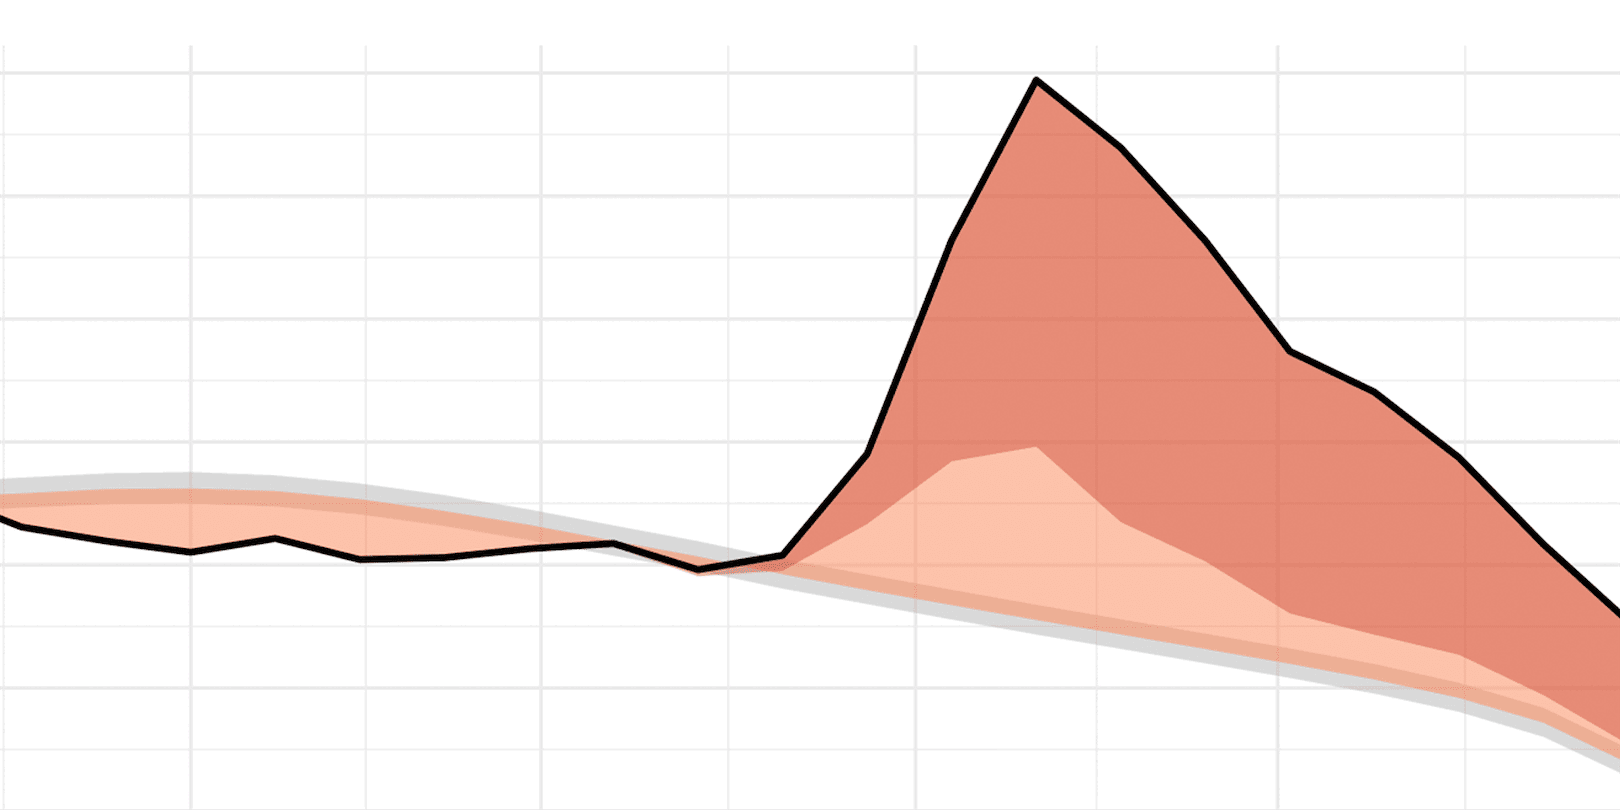 Image of a line graph